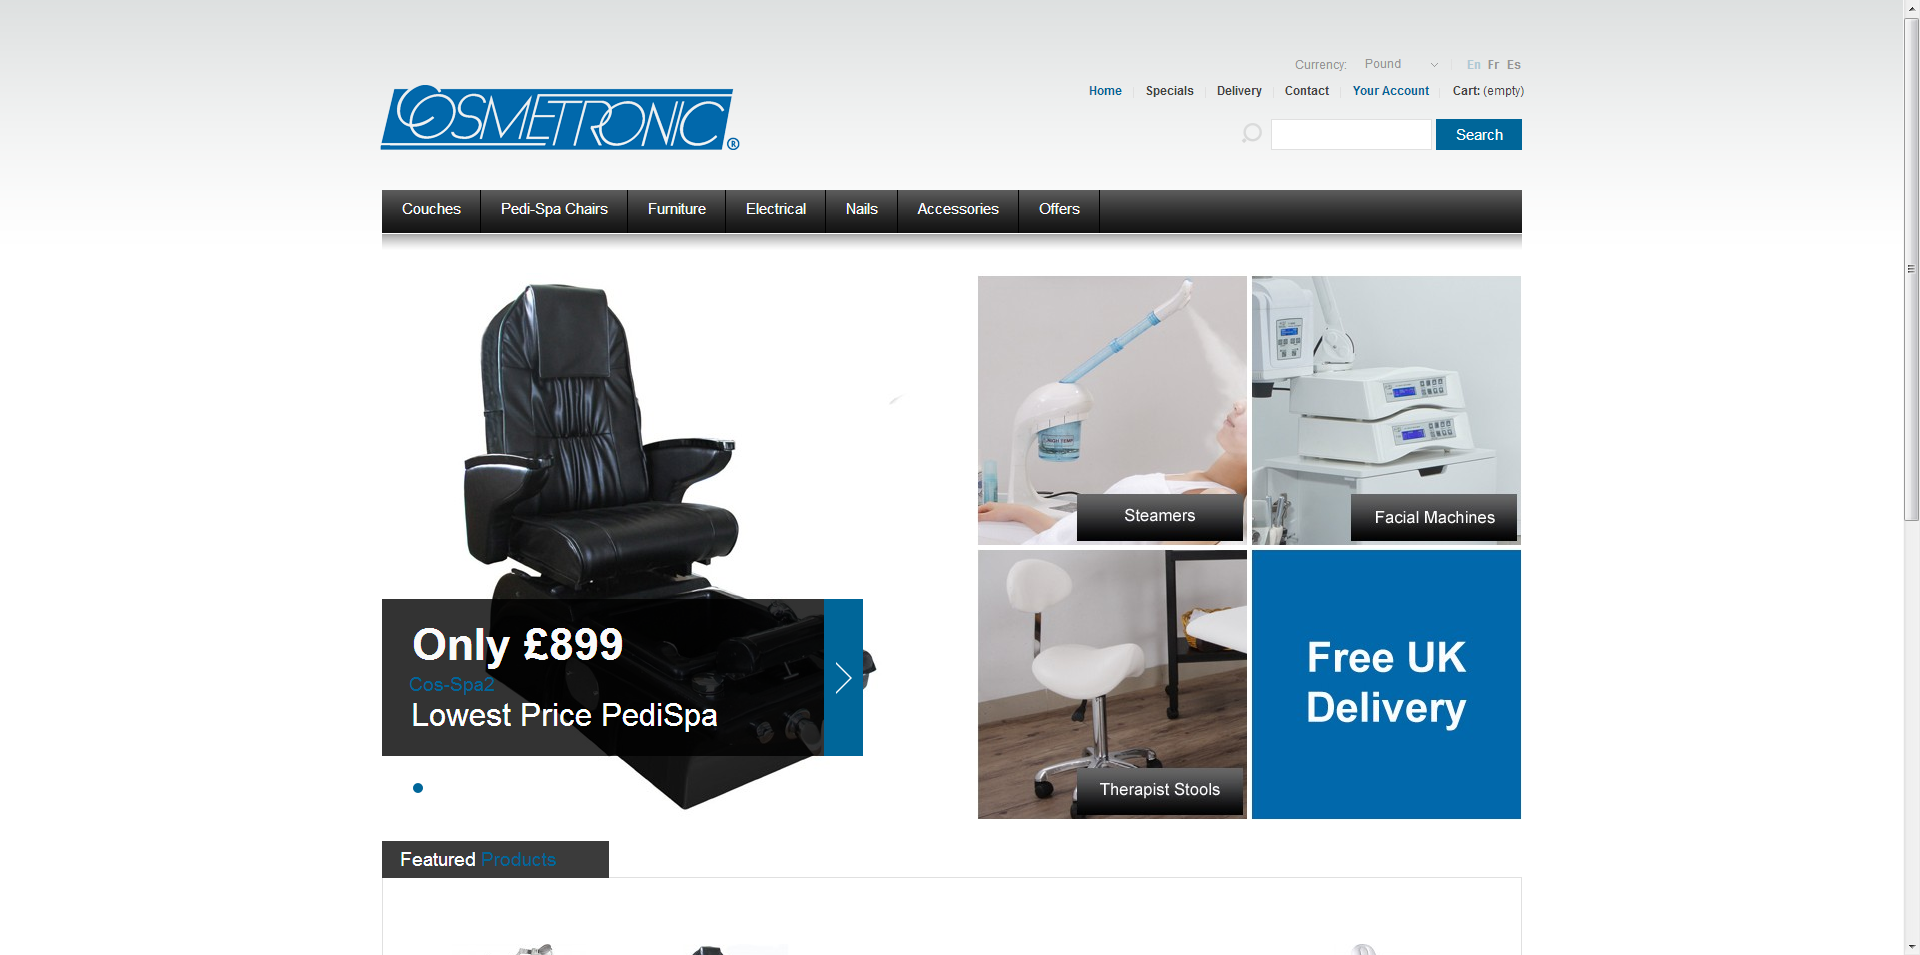 We have just launched a new website offering the best in